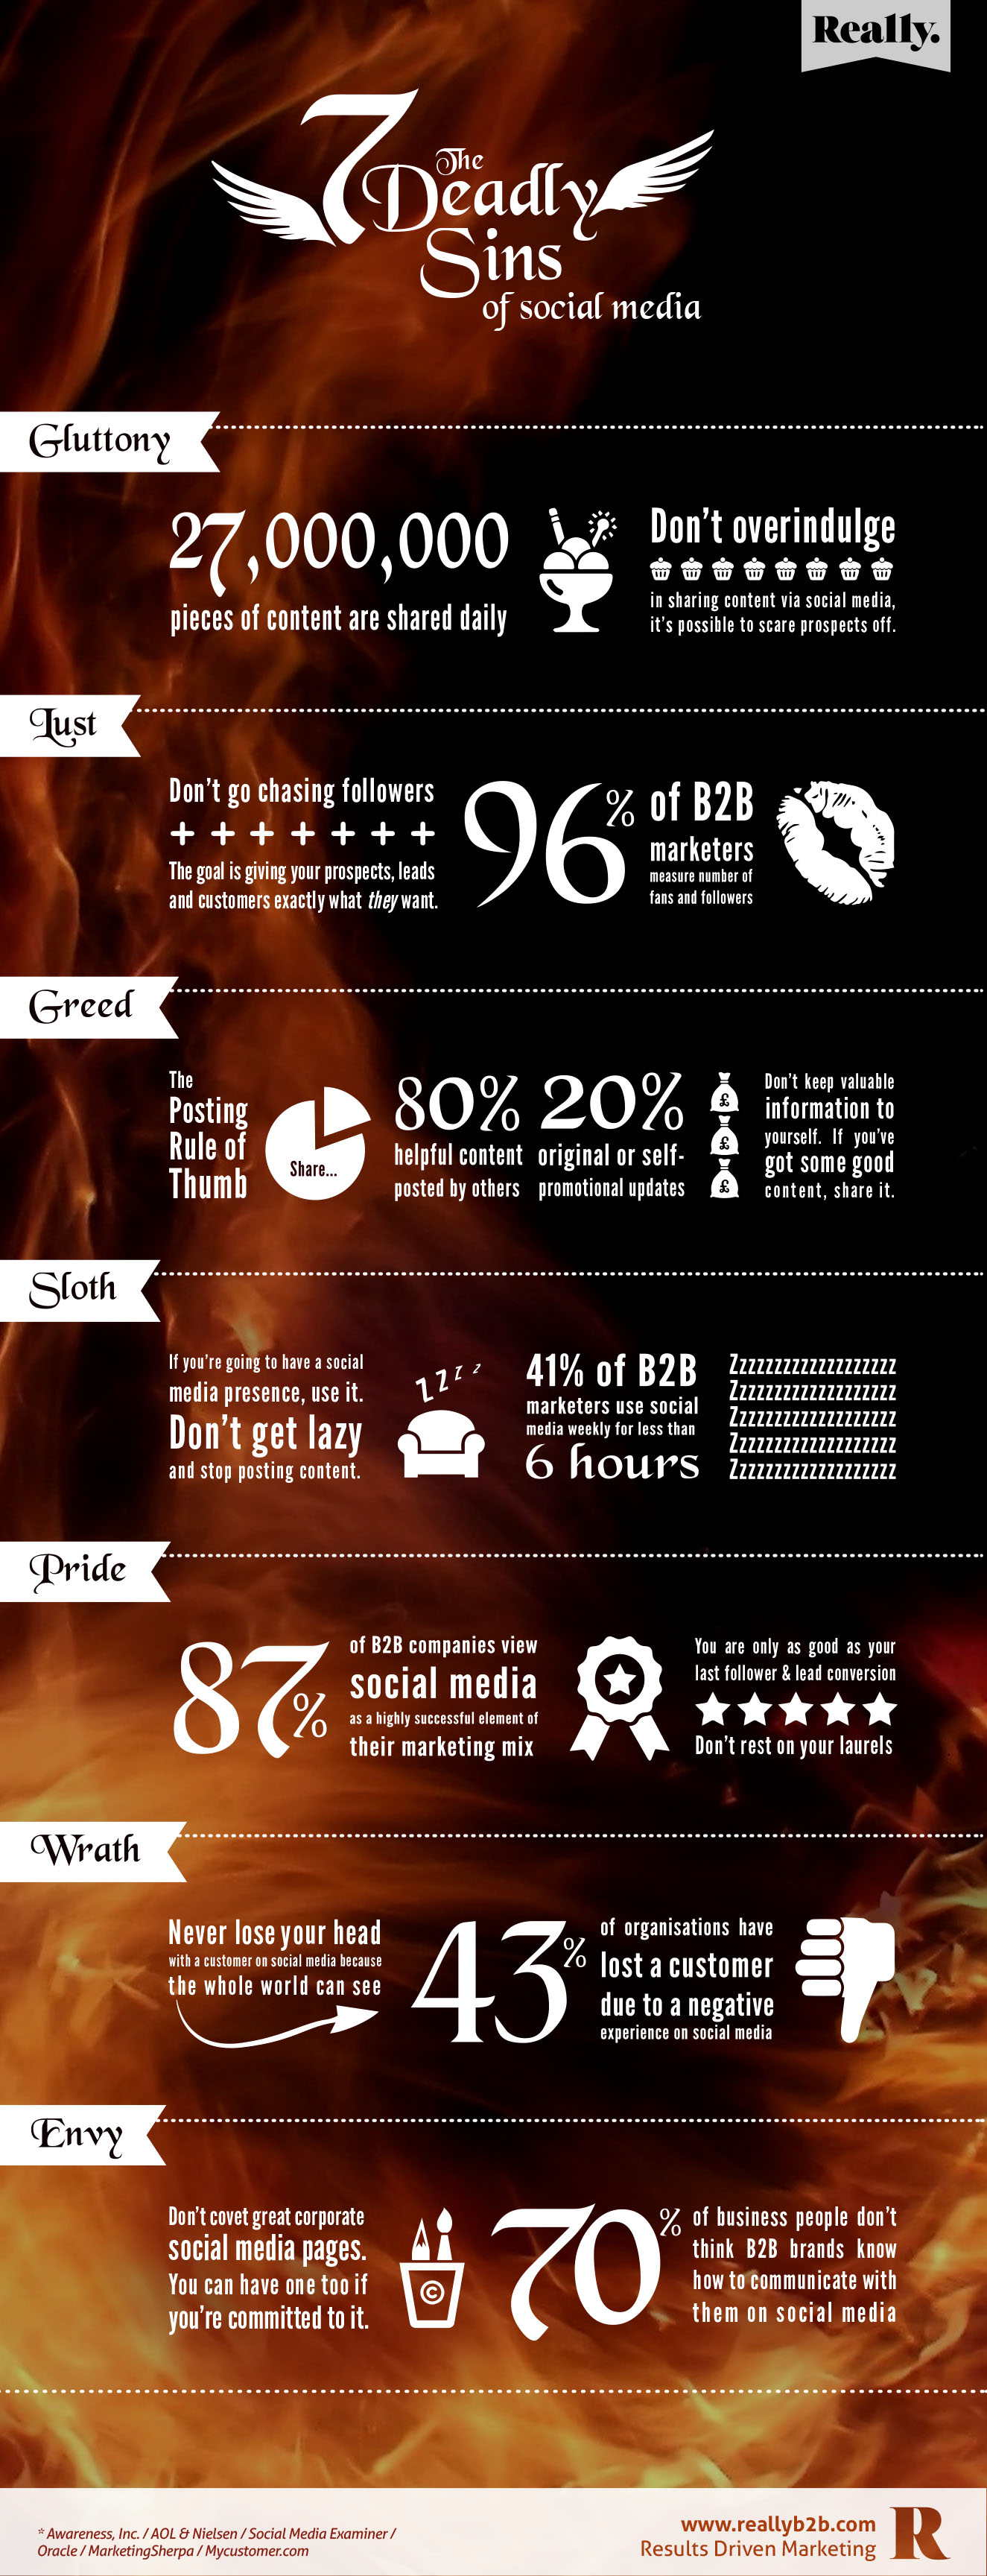 7 deadly sins in social media